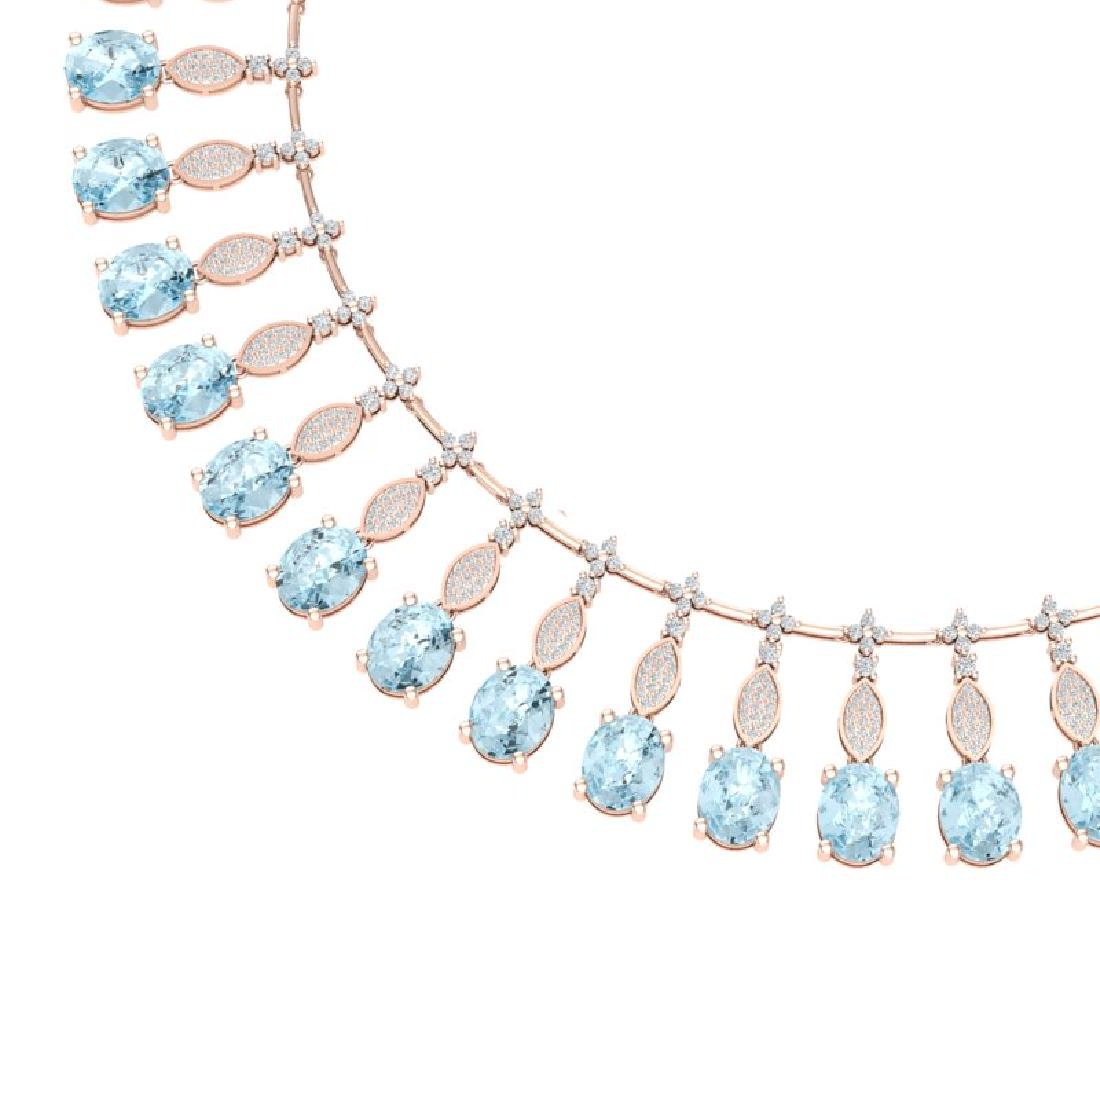 65.76 CTW Royalty Sky Topaz & VS Diamond Necklace 18K